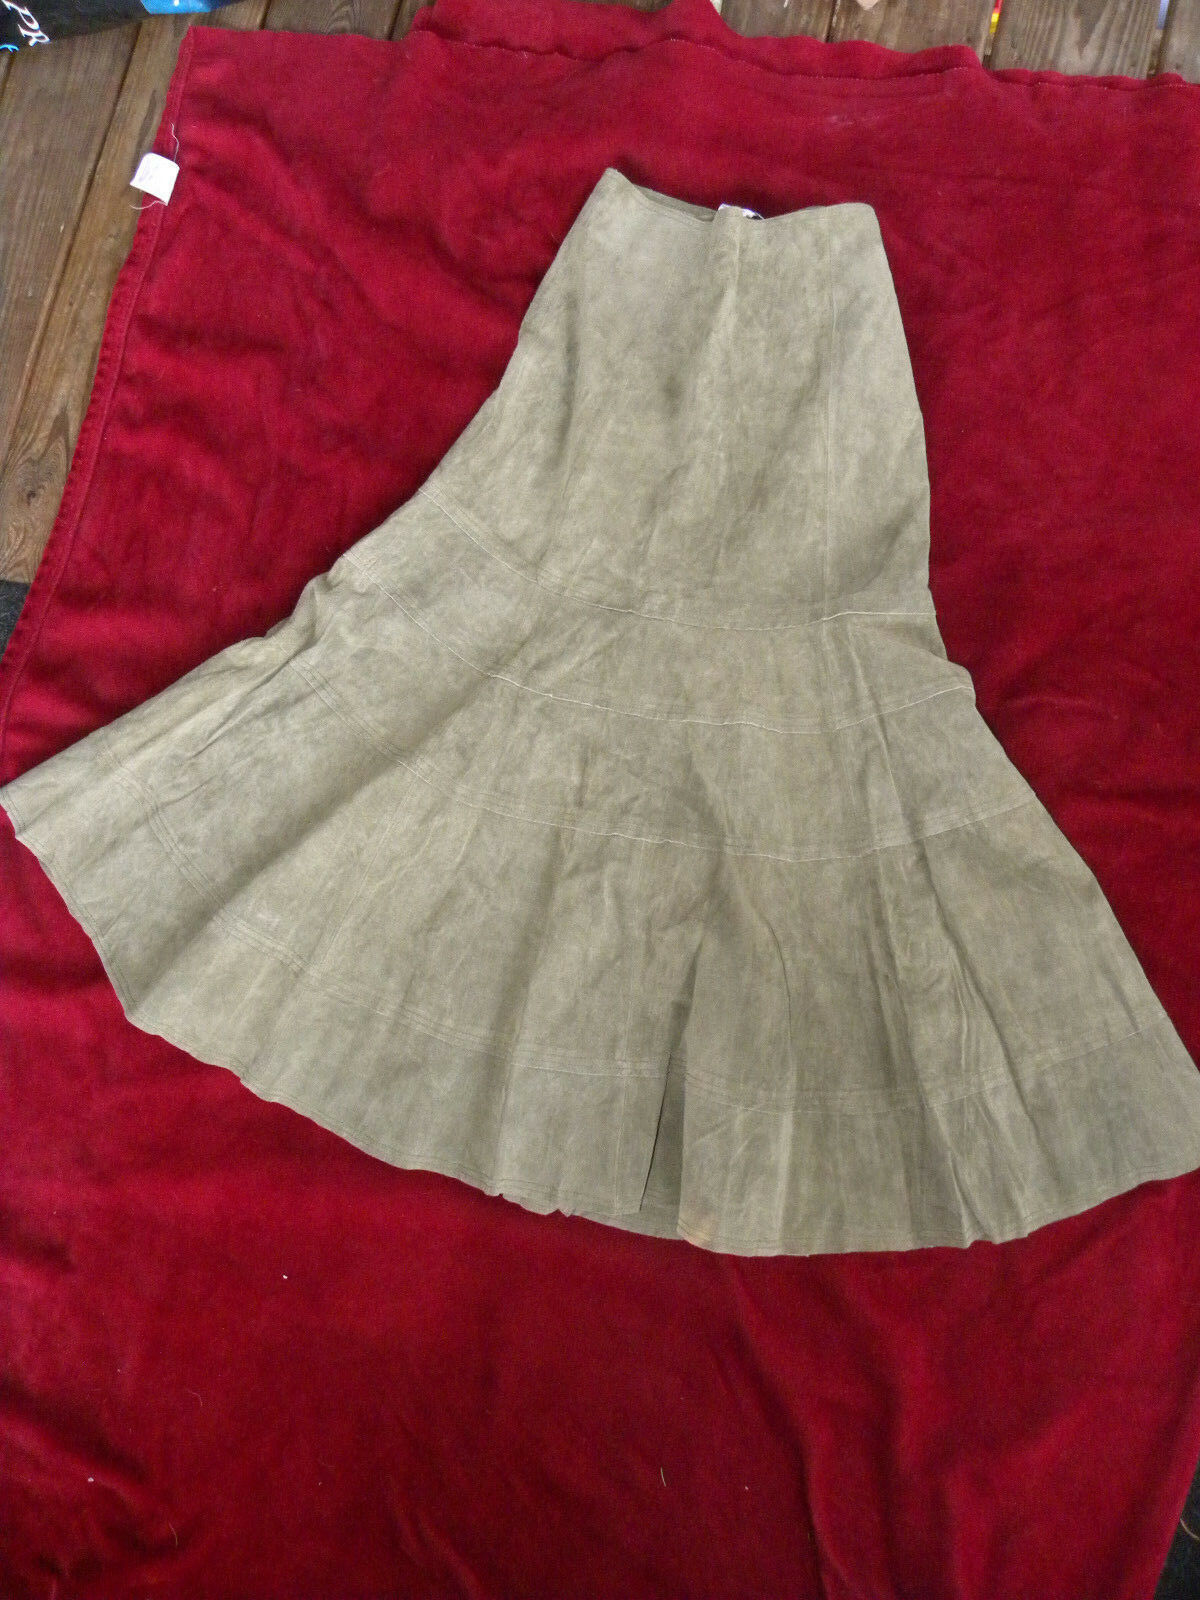 NWT Newport News Olive Womens Suede Leather Calf Length Flare Skirt Size 4-EB40